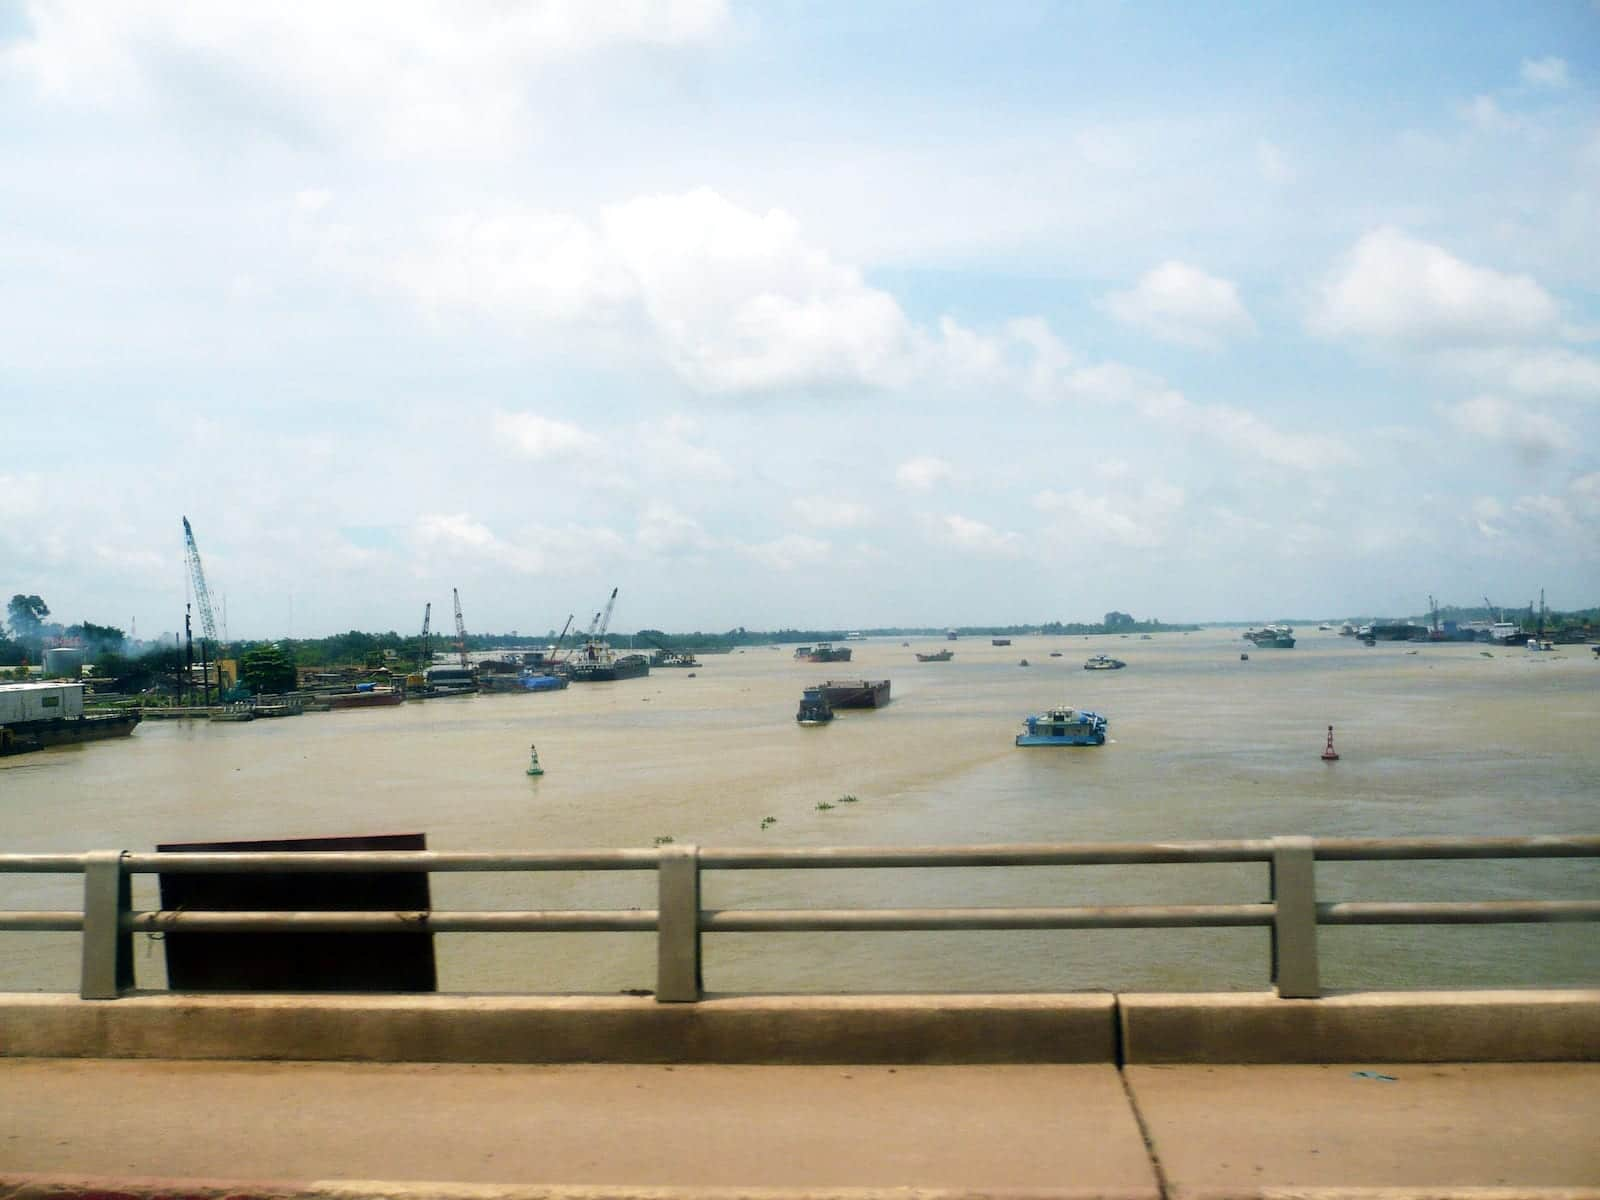 Image of the Dong Nai River in Vietnam